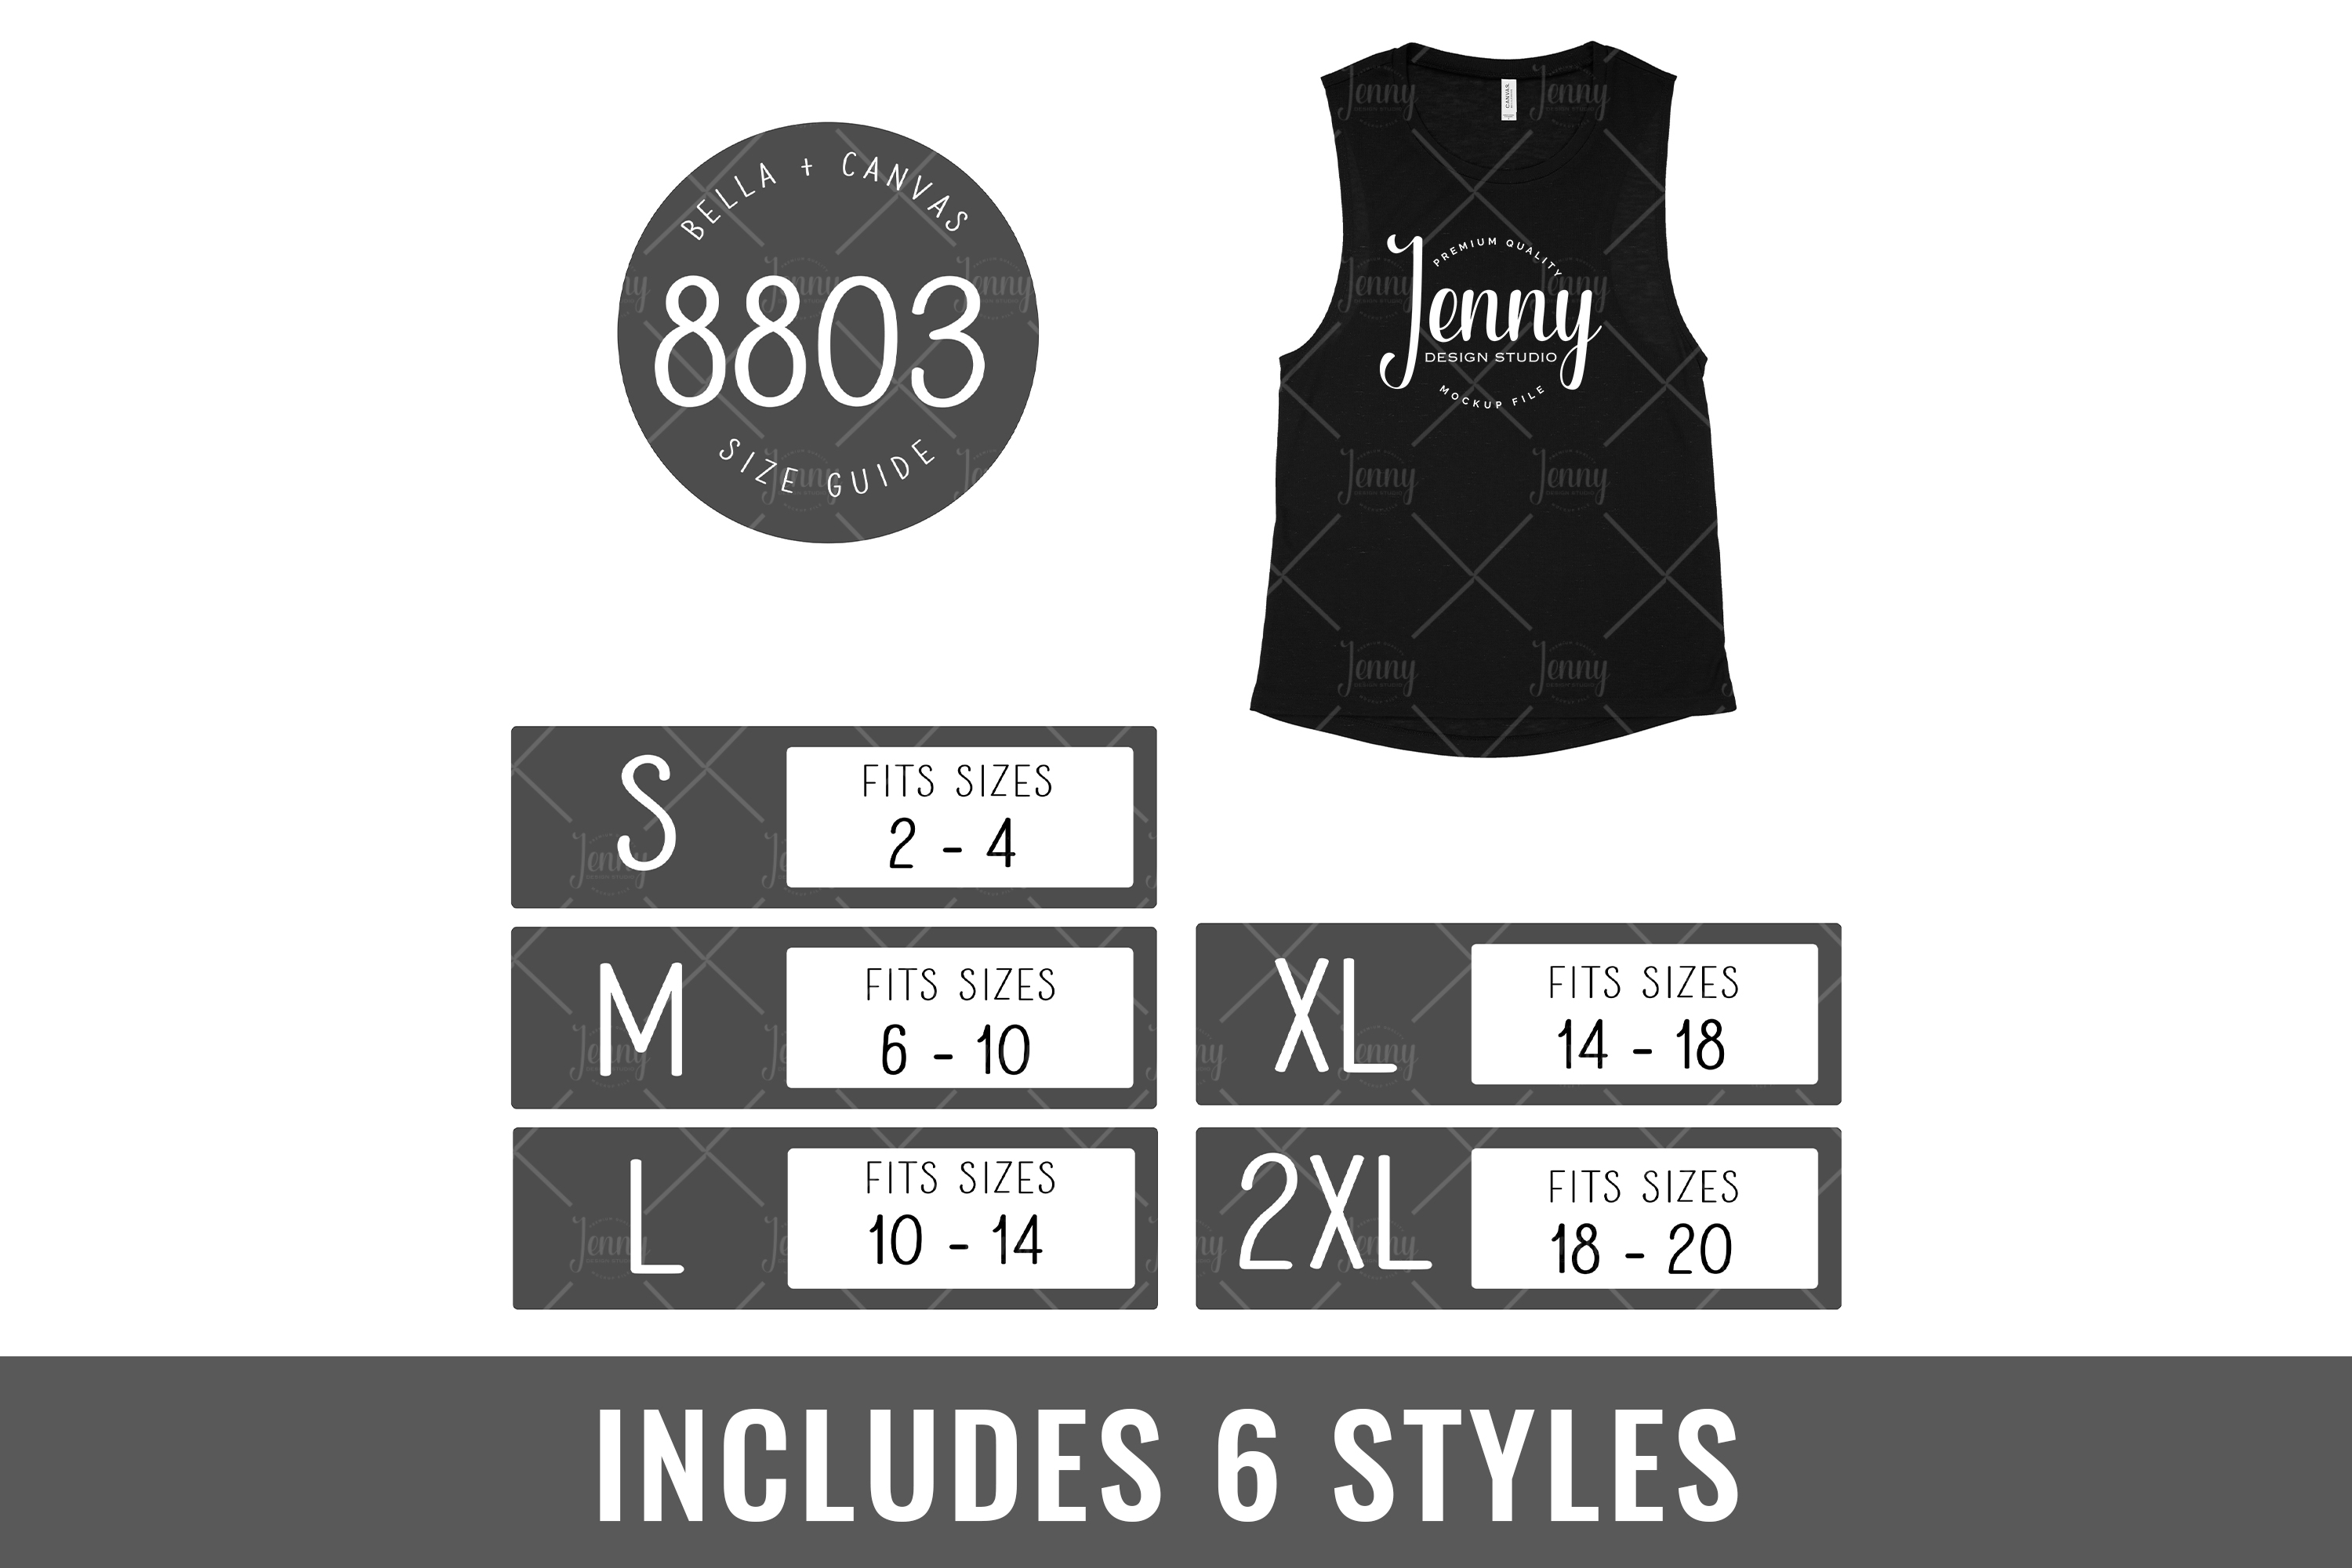 Bella Canvas 8803 Tank Top Size Chart Mockup example image 1